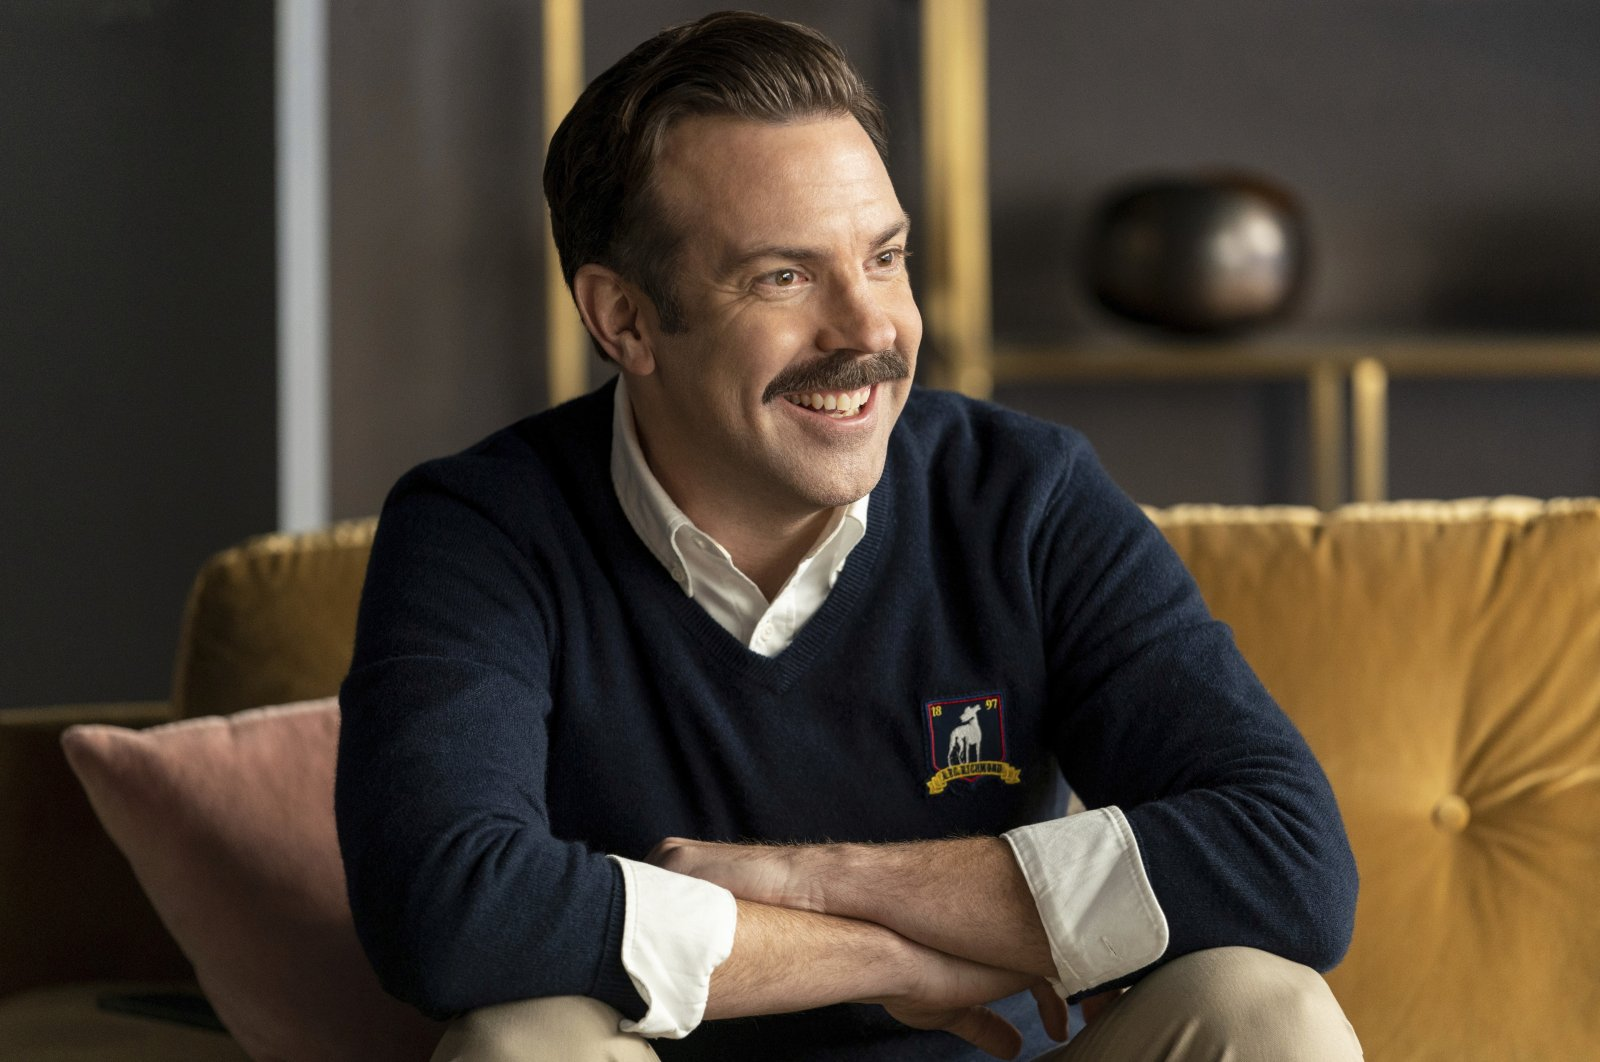 """Jason Sudeikis, as Ted Lasso, smiles as he sits on a sofa, in a scene from the series """"Ted Lasso."""" (Apple TV+ via AP)"""